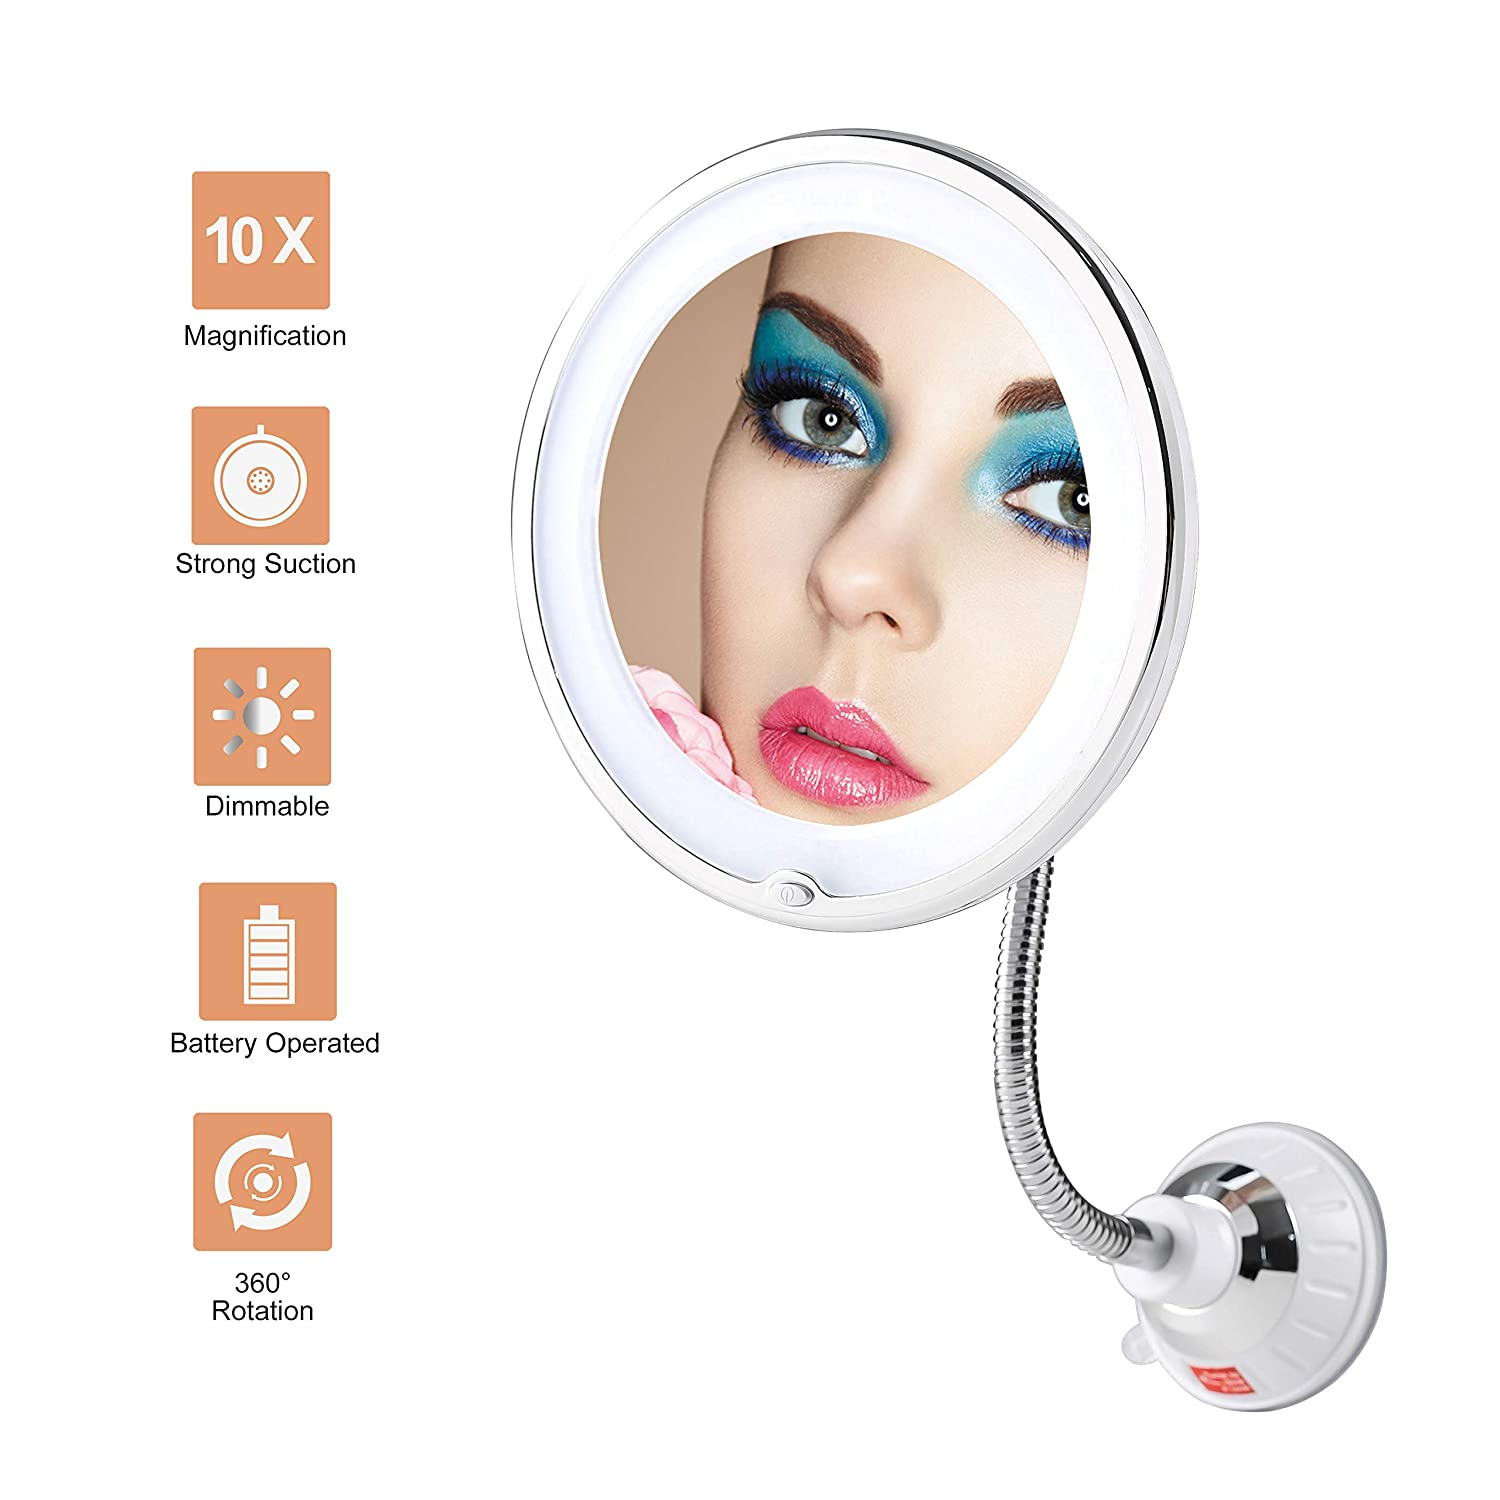 TOP4EVER Flexible Gooseneck LED Lighted 10X Magnifying Makeup Mirror Power Locking Suction Cup with Dimmable Light and 360 Degree Swivel, Portable Cordless Travel and Home Bathroom Vanity Mirror